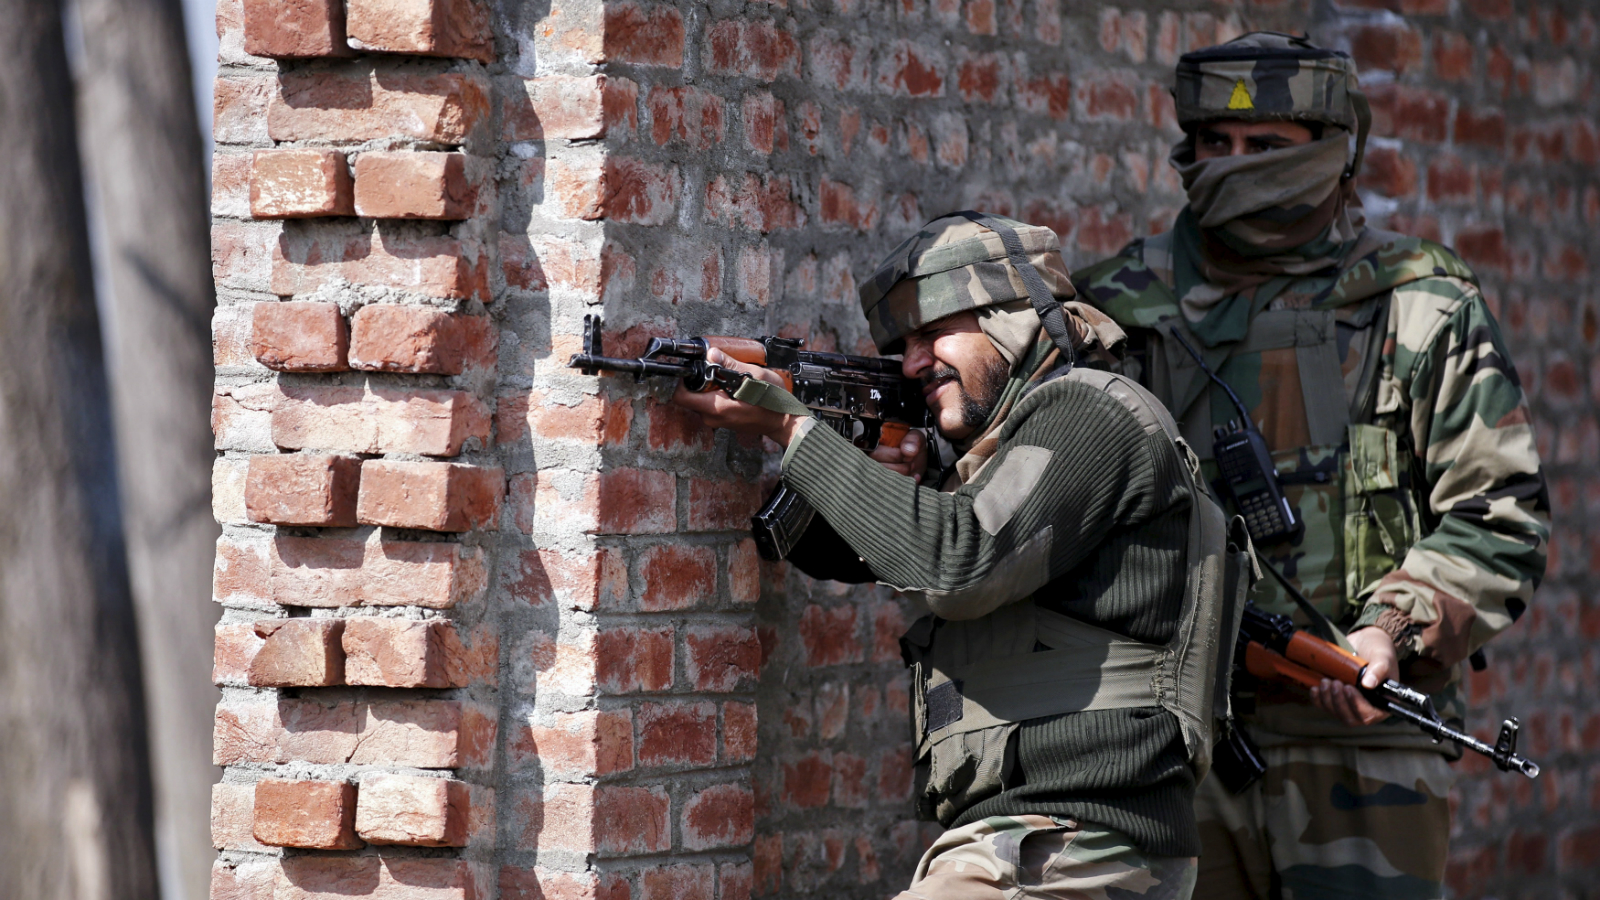 Indian army soldiers take their positions near the site of a gun battle between Indian security forces and militants on the outskirts of Srinagar February 21, 2016.